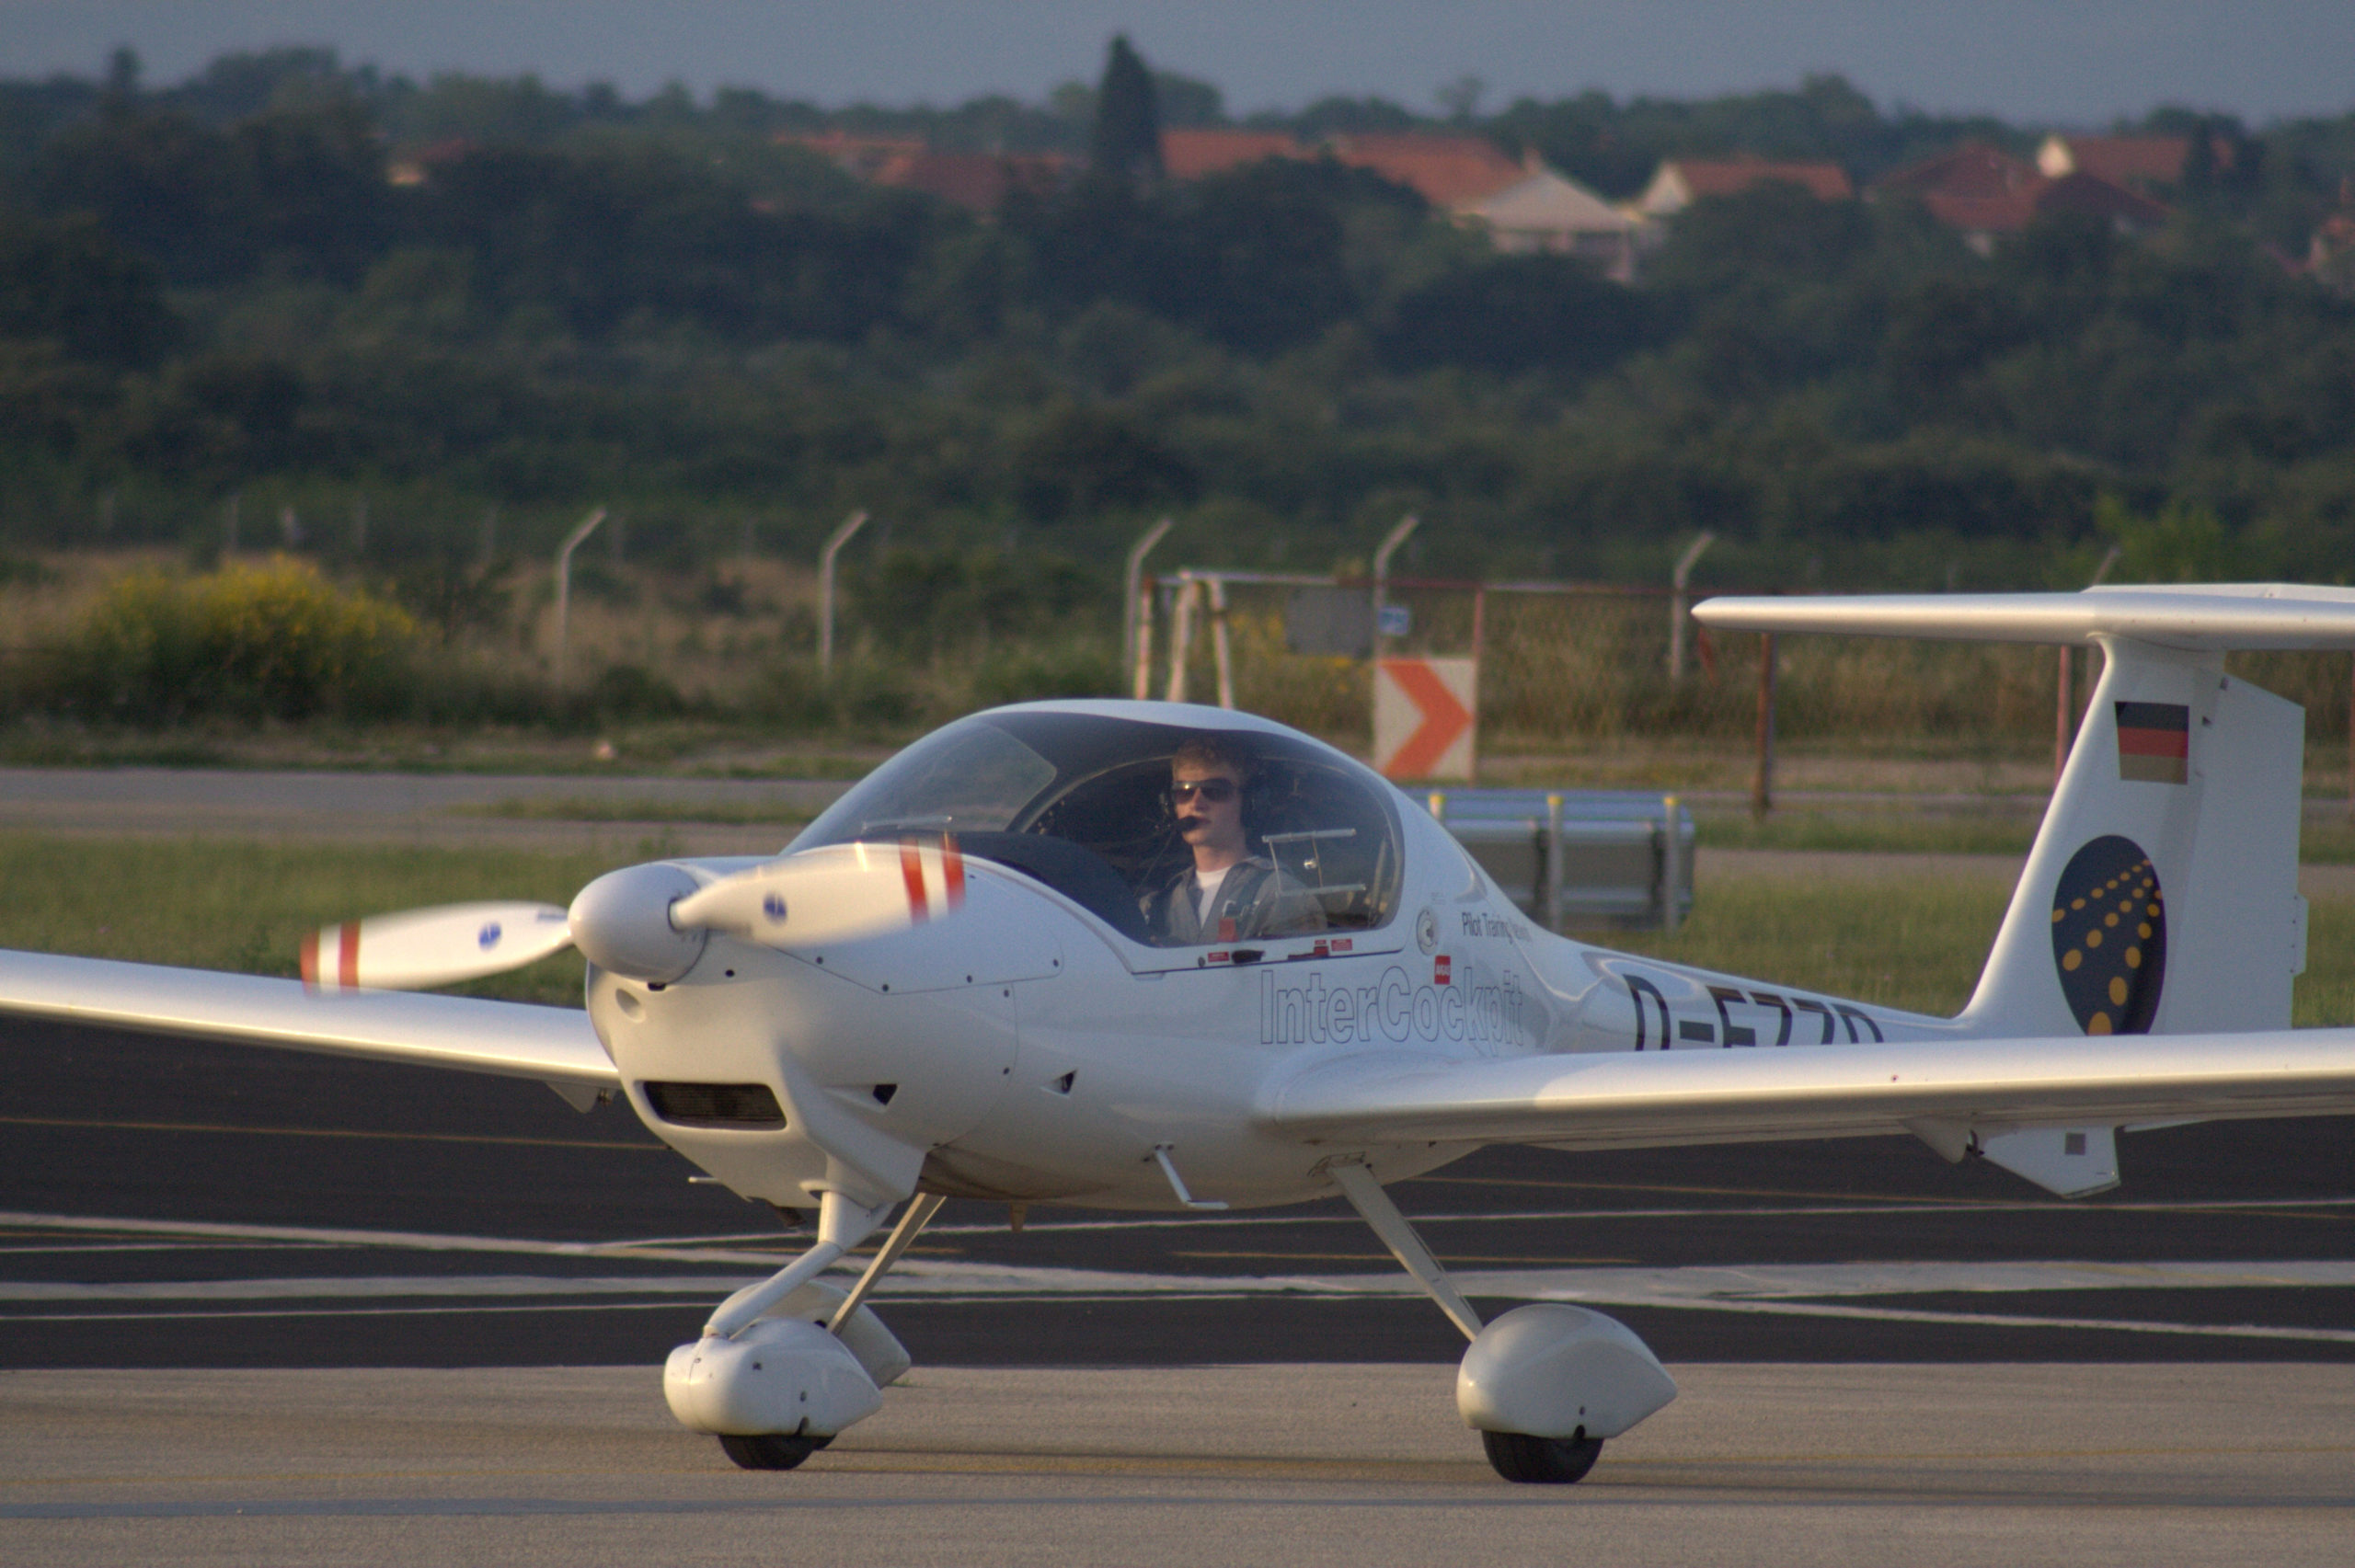 first solo flight, flight school, student pilot, DA20, Zadar, Pilot Training Network, Intercockpit